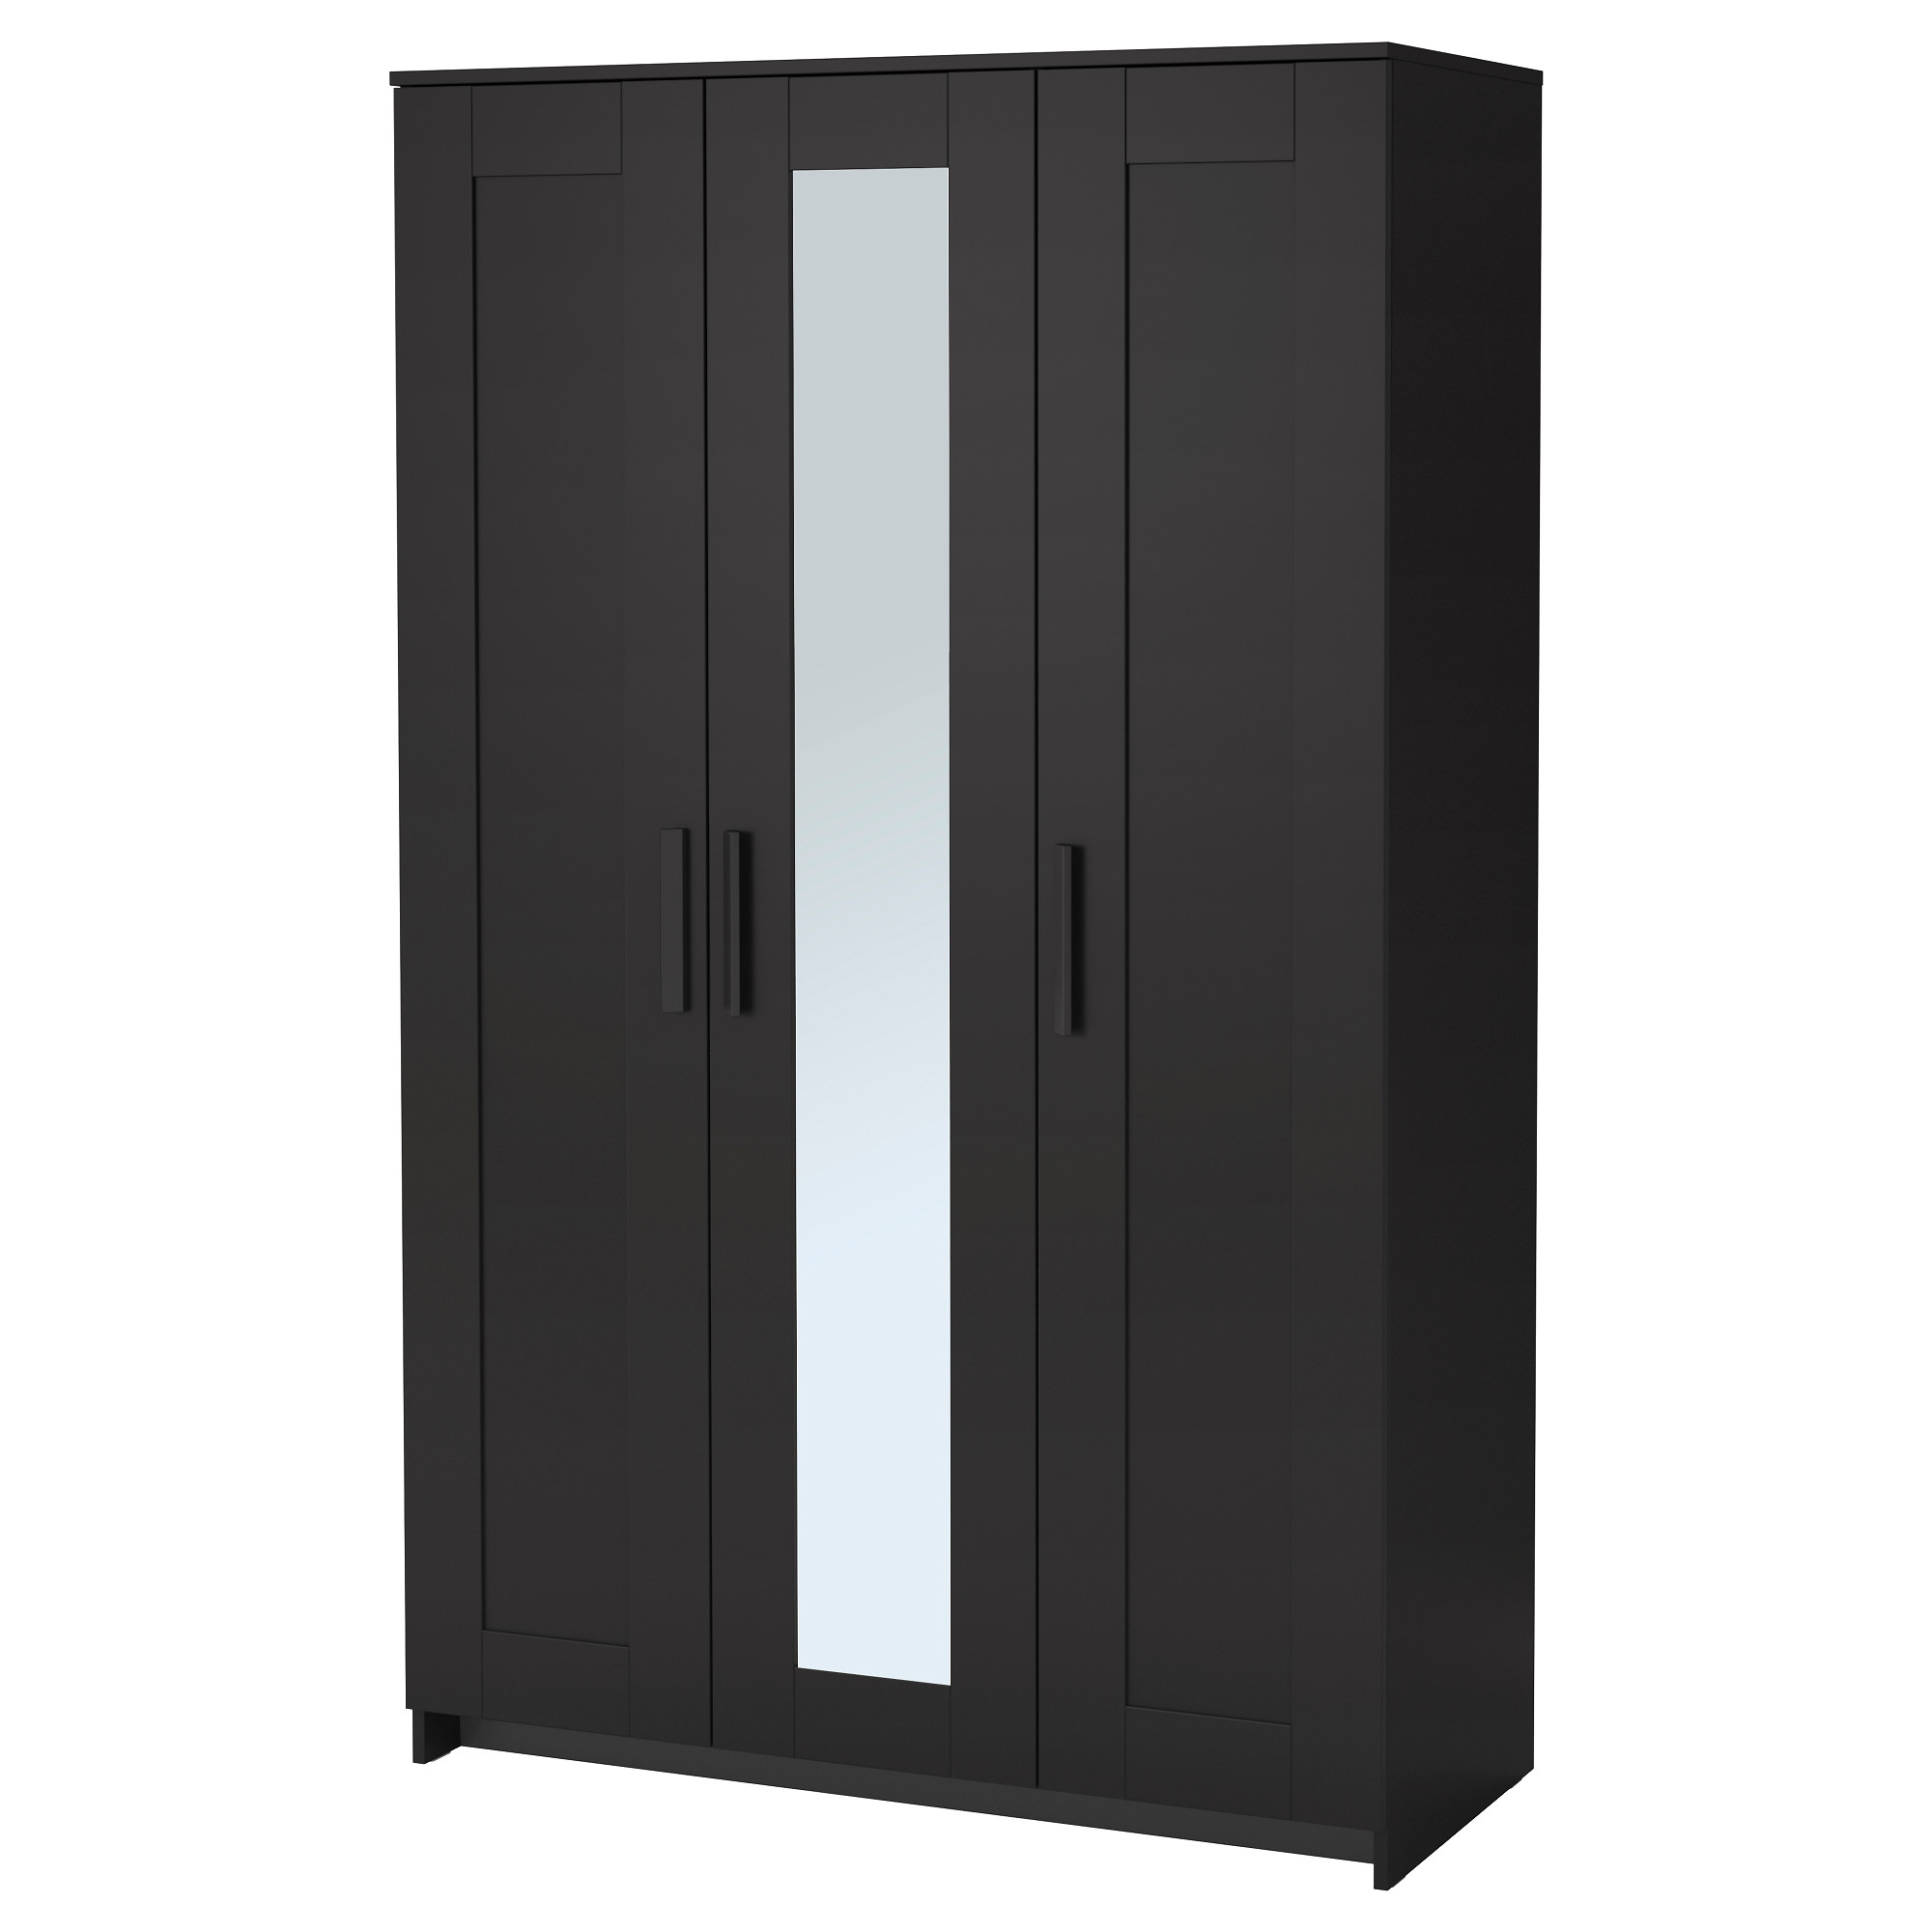 Wardrobes Armoires Closets Ikea With Corner Wardrobe Closet IKEA (View 17 of 25)